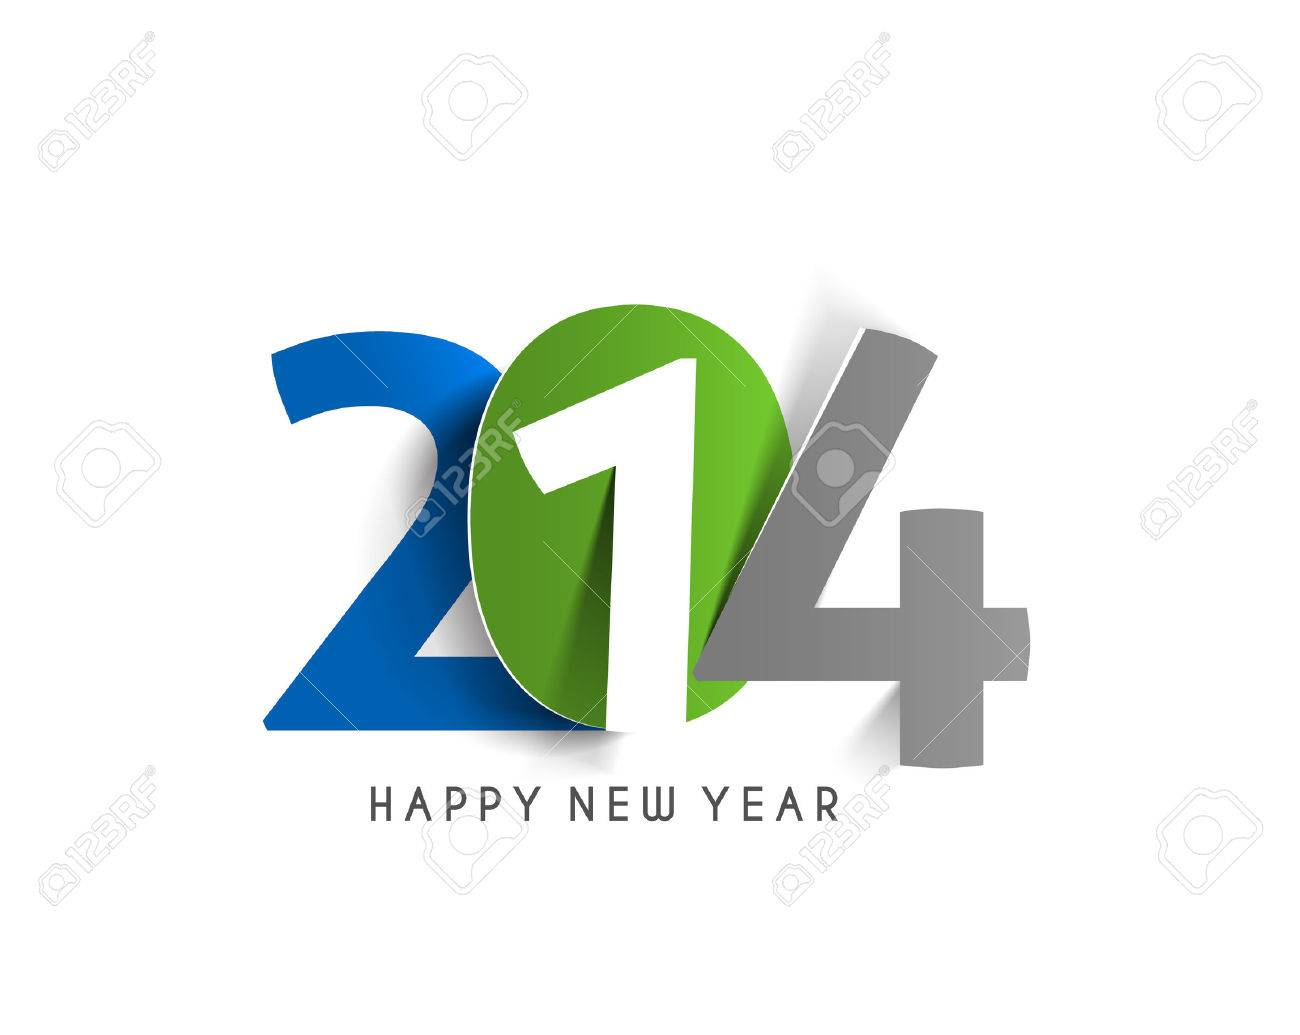 Happy New Year 2014 Text Design Stock Vector - 24102056